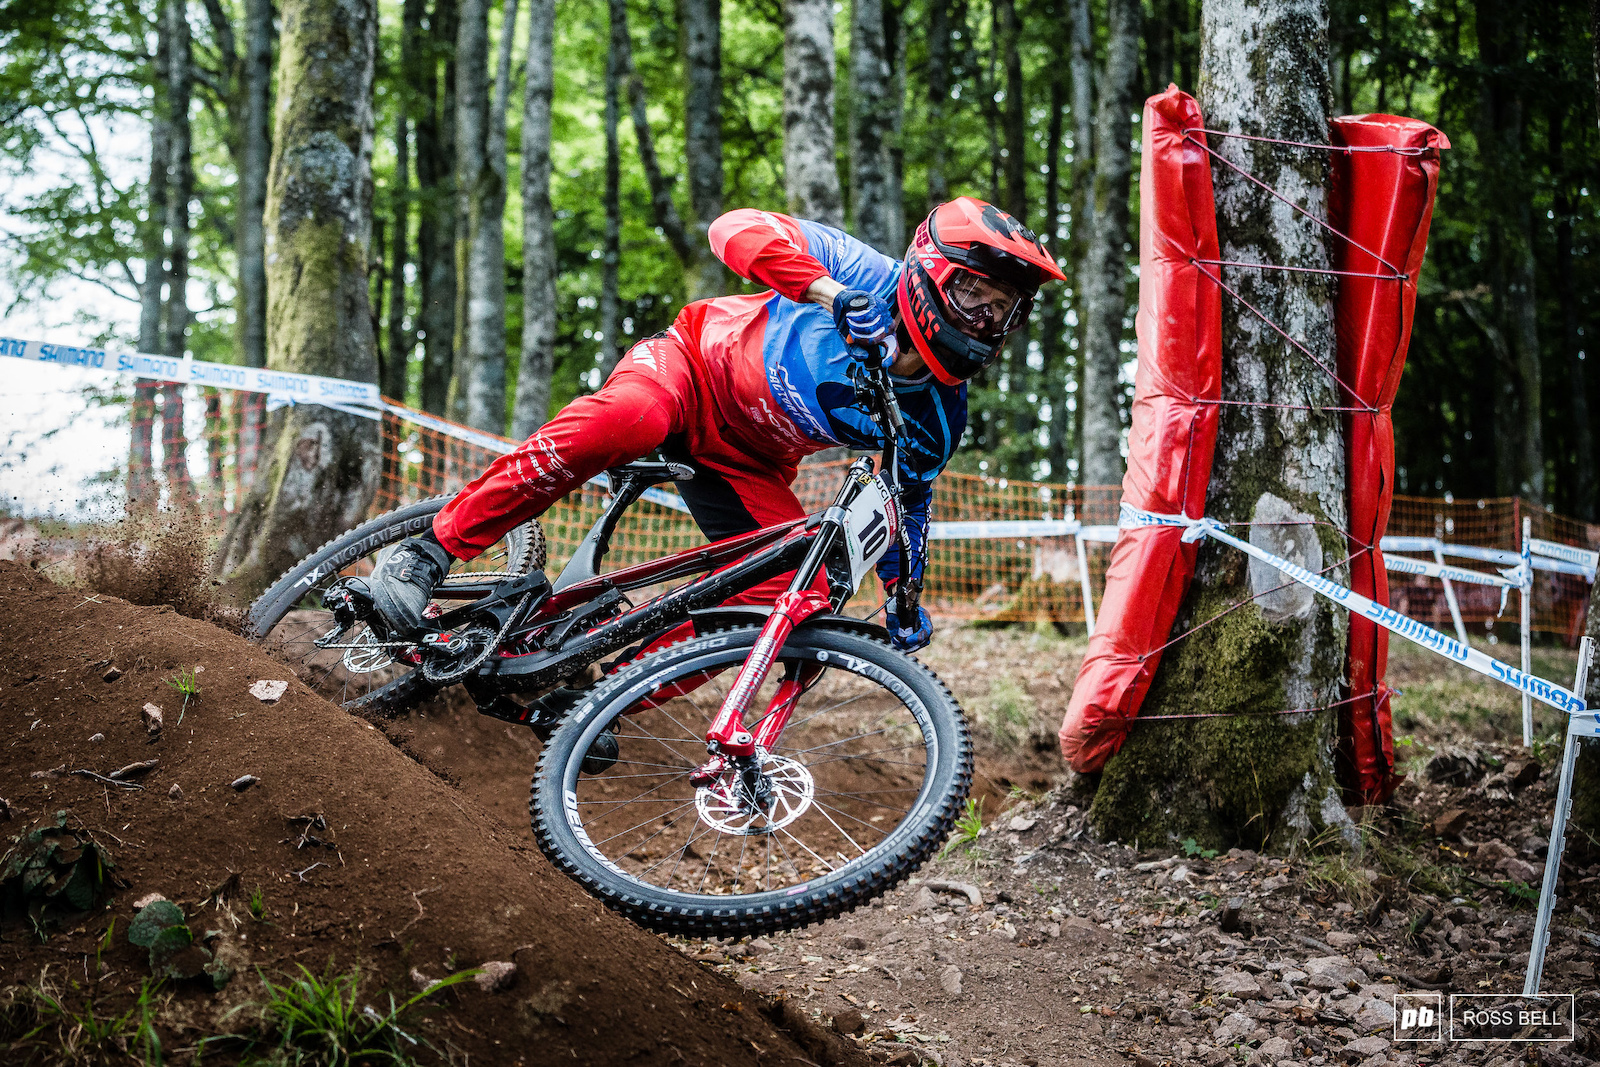 Sam Blenkinsop cutting through the soft first turns which were looking worse for wear by the end of the day.